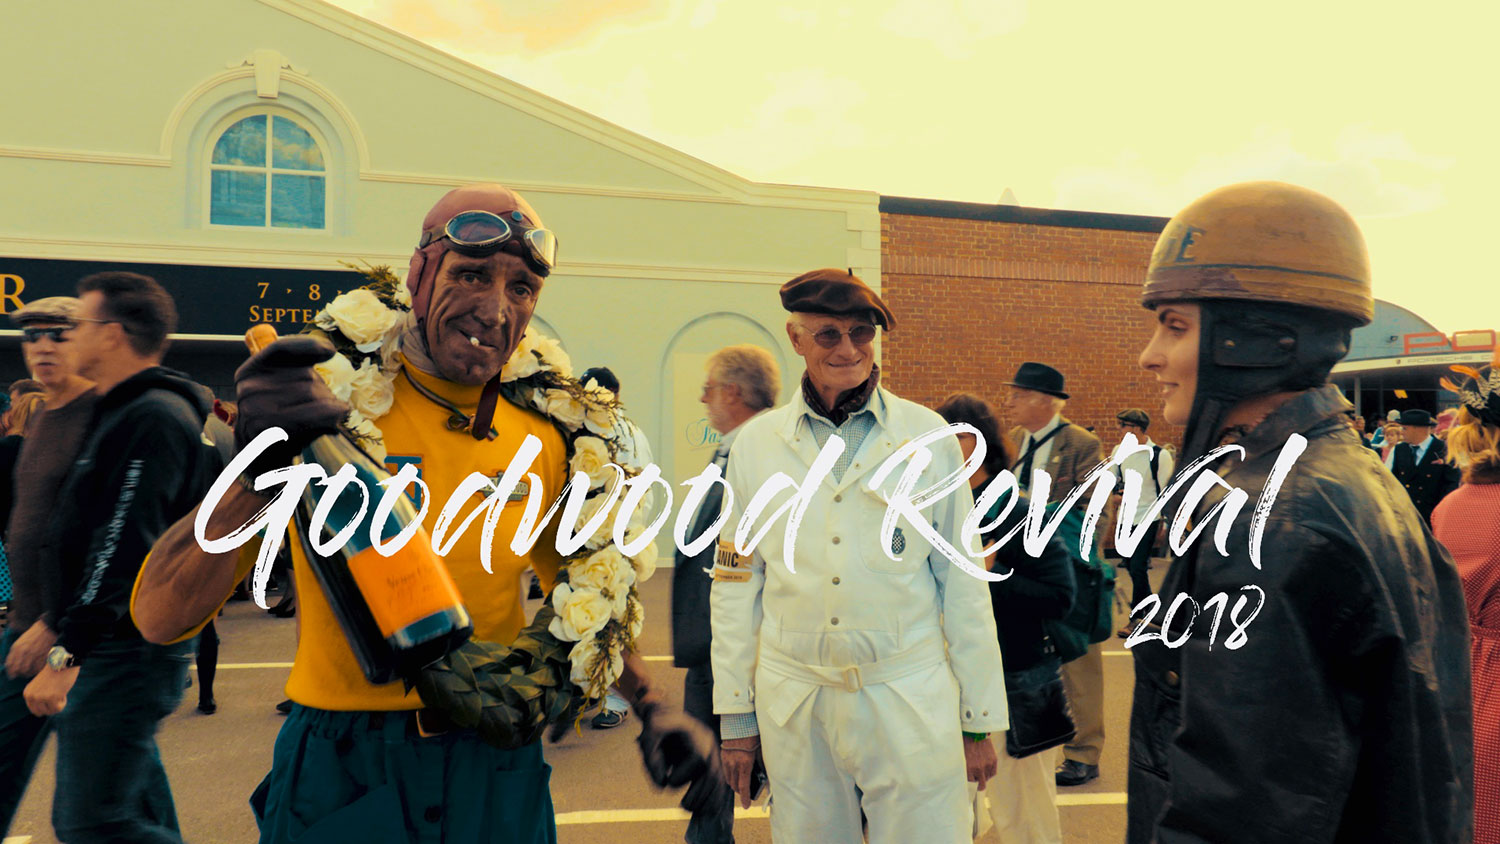 CUSTOMER CASE STUDY: Shooting Goodwood Revival with the Canon XC10 & DJI Ronin-S